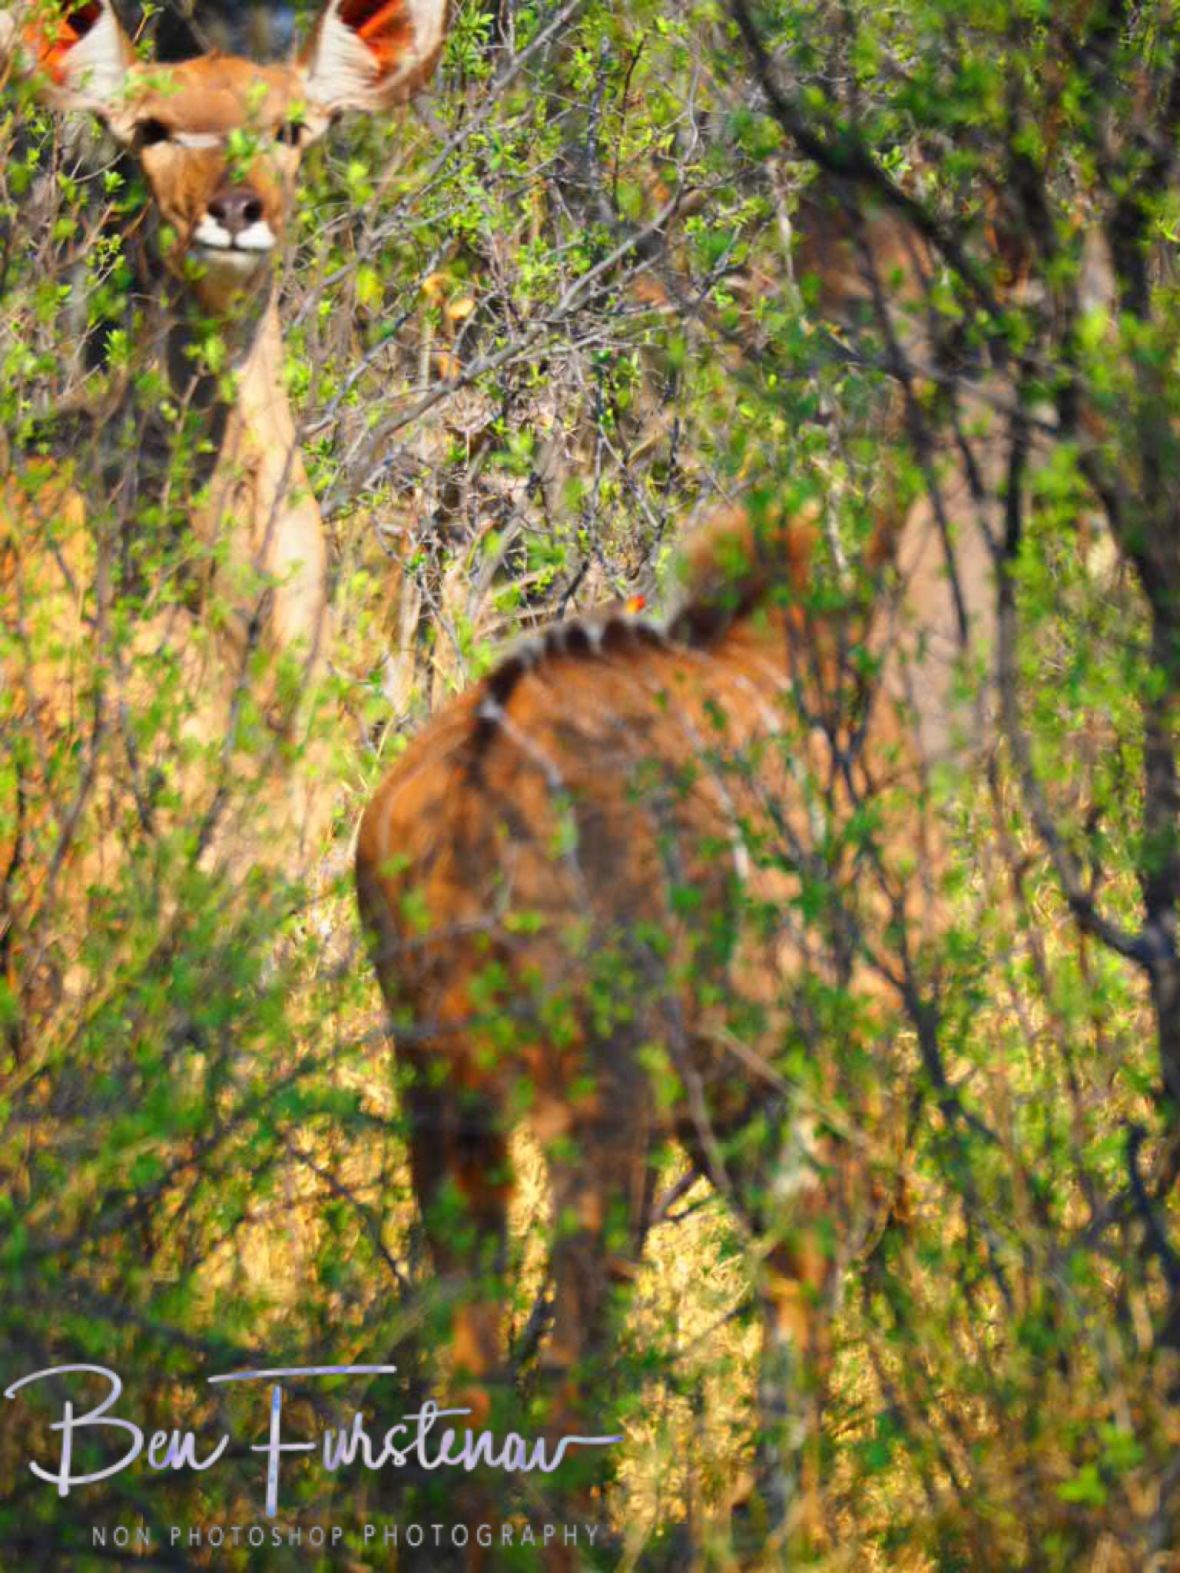 Interesting shot, body of one, head of another, Moremi National Park, Okavango Delta, Botswana